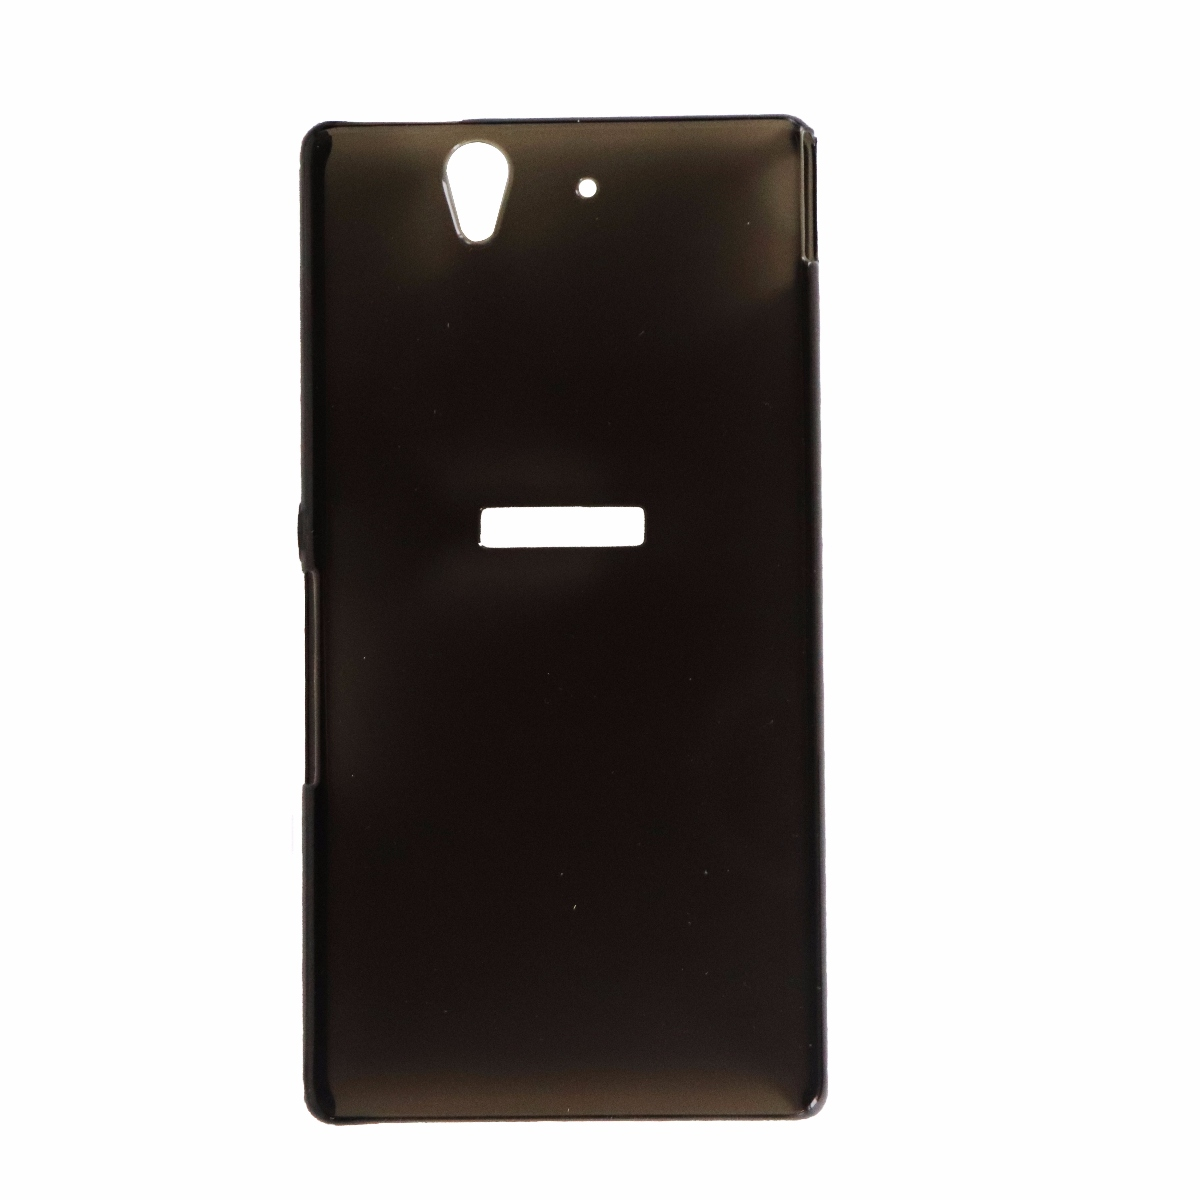 SwitchEasy NUDE Series Slim Case Cover for Sony Xperia Z - Gloss Black